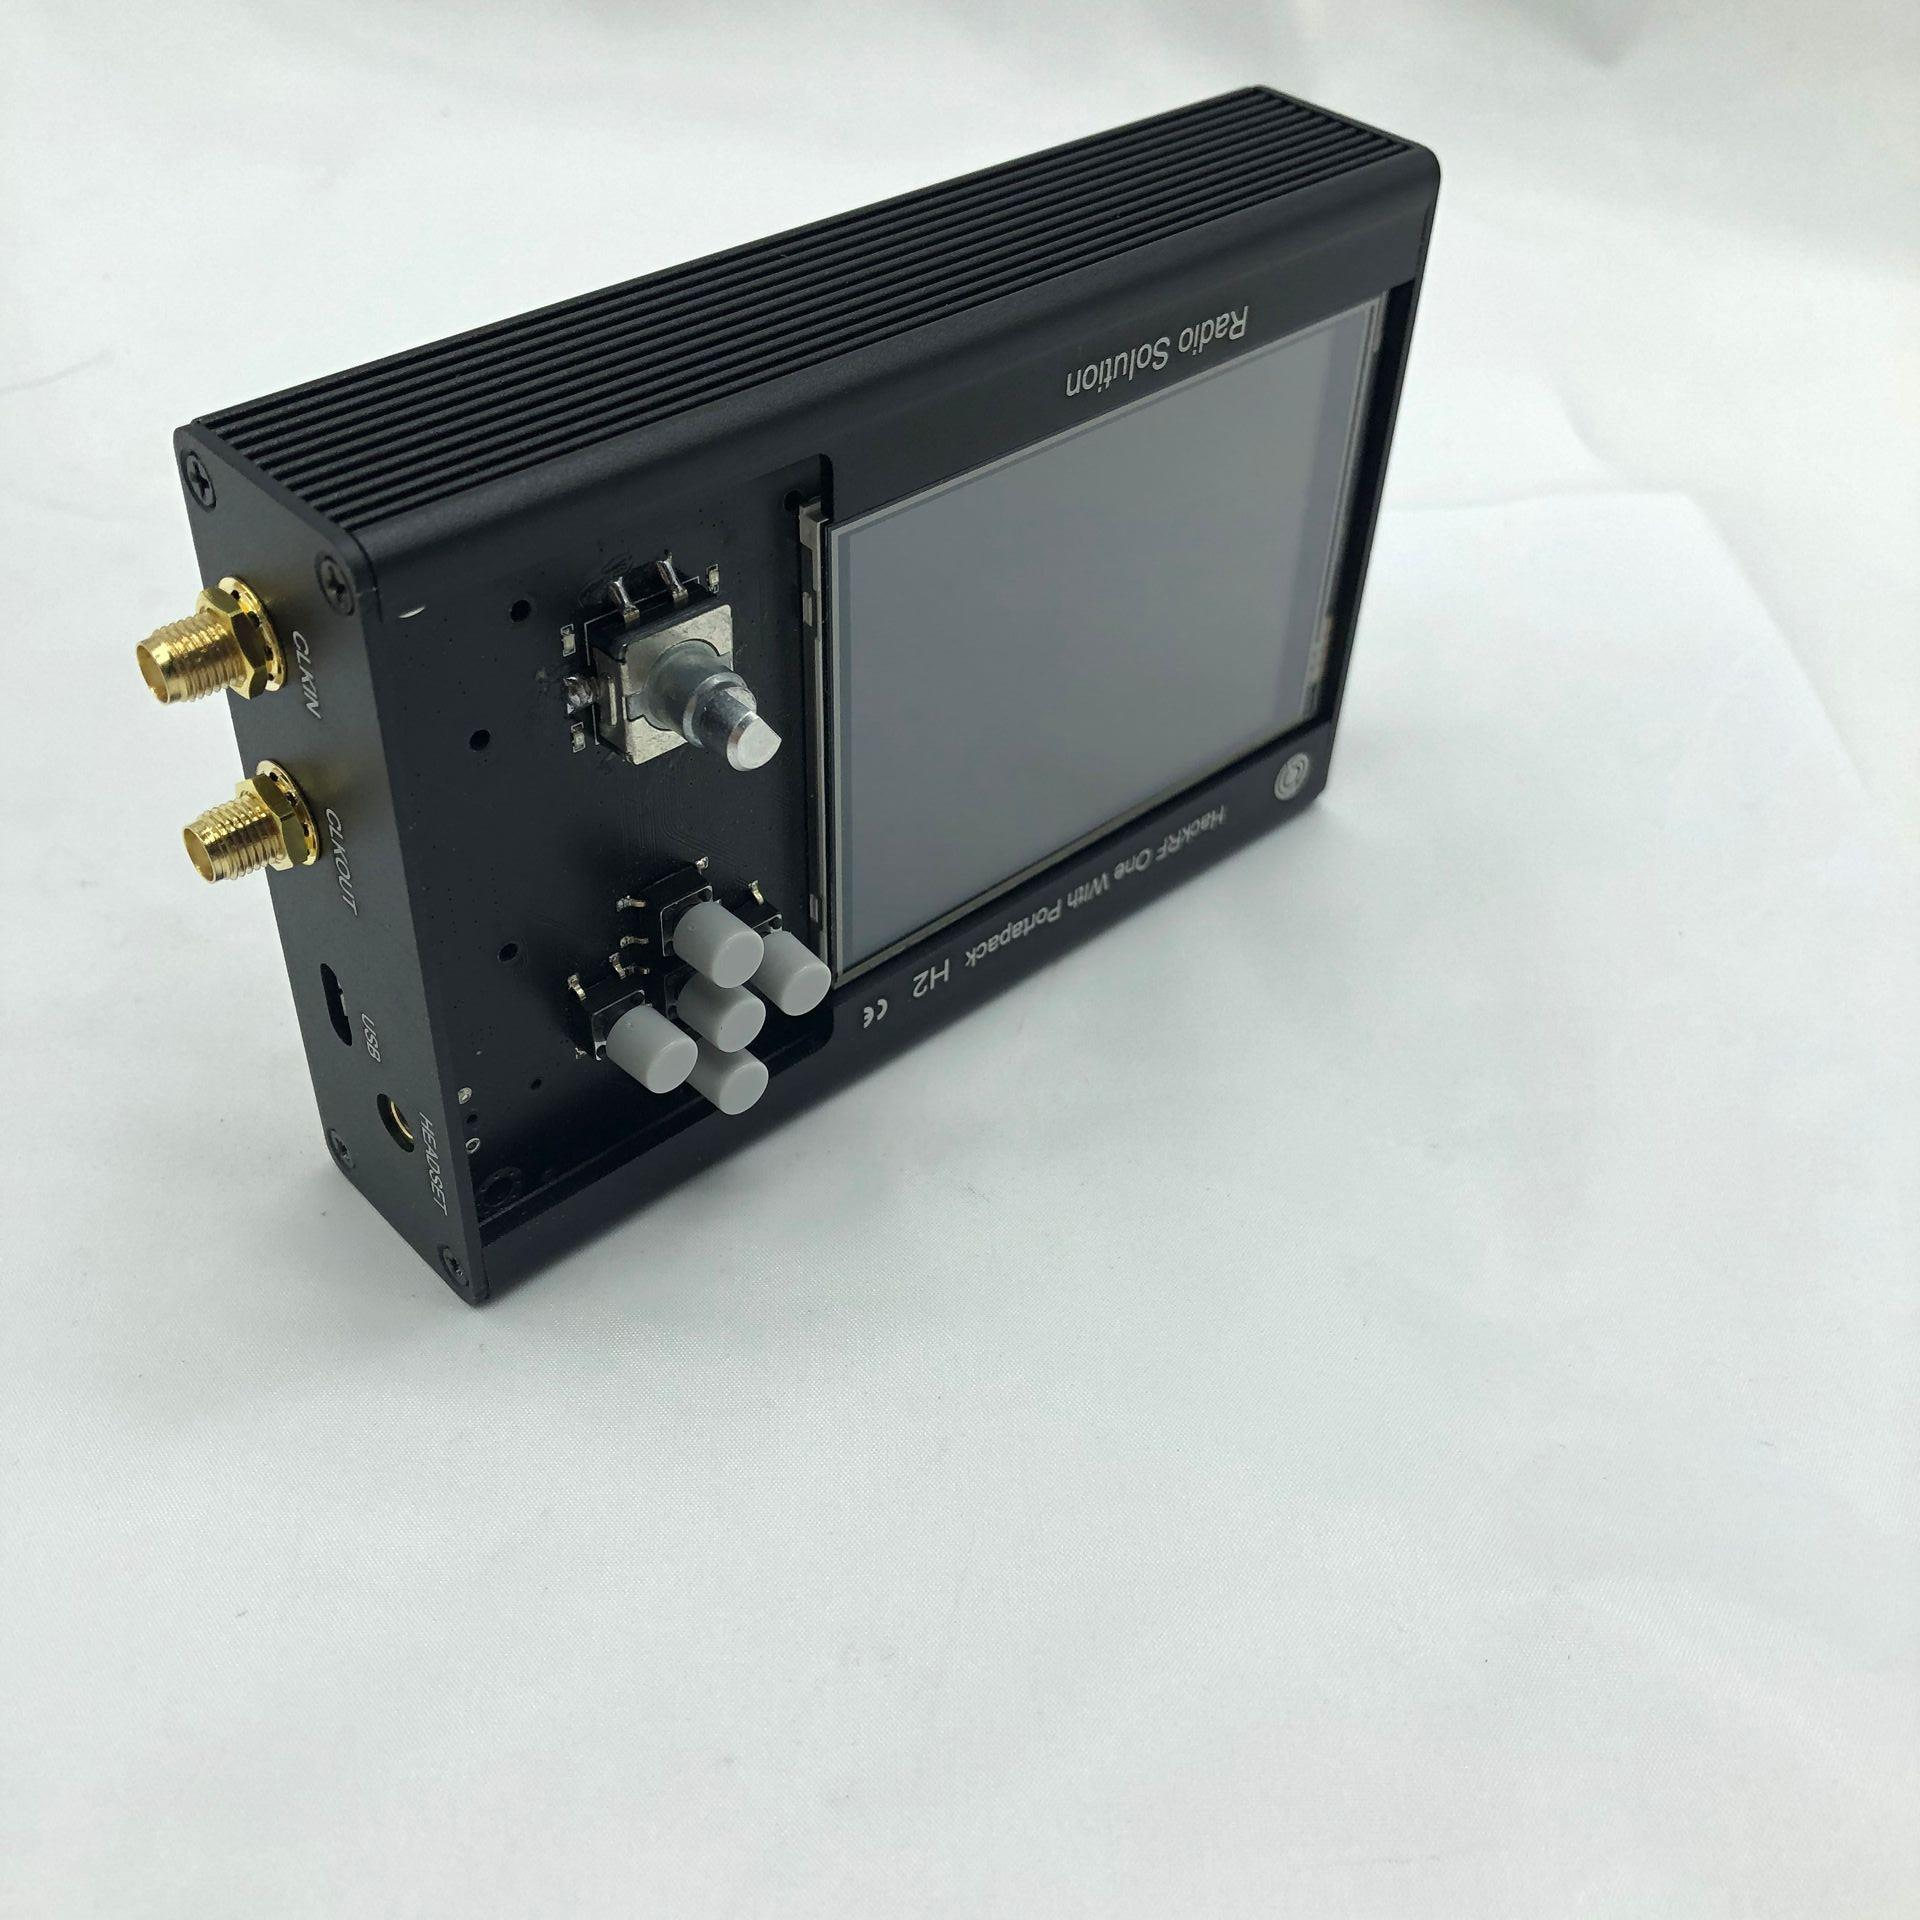 Metal Case  Black Aluminum Enclosure Cover Case Shell For PORTAPACK H2 + HACKRF ONE SDR Radio  The Price    Only  Case